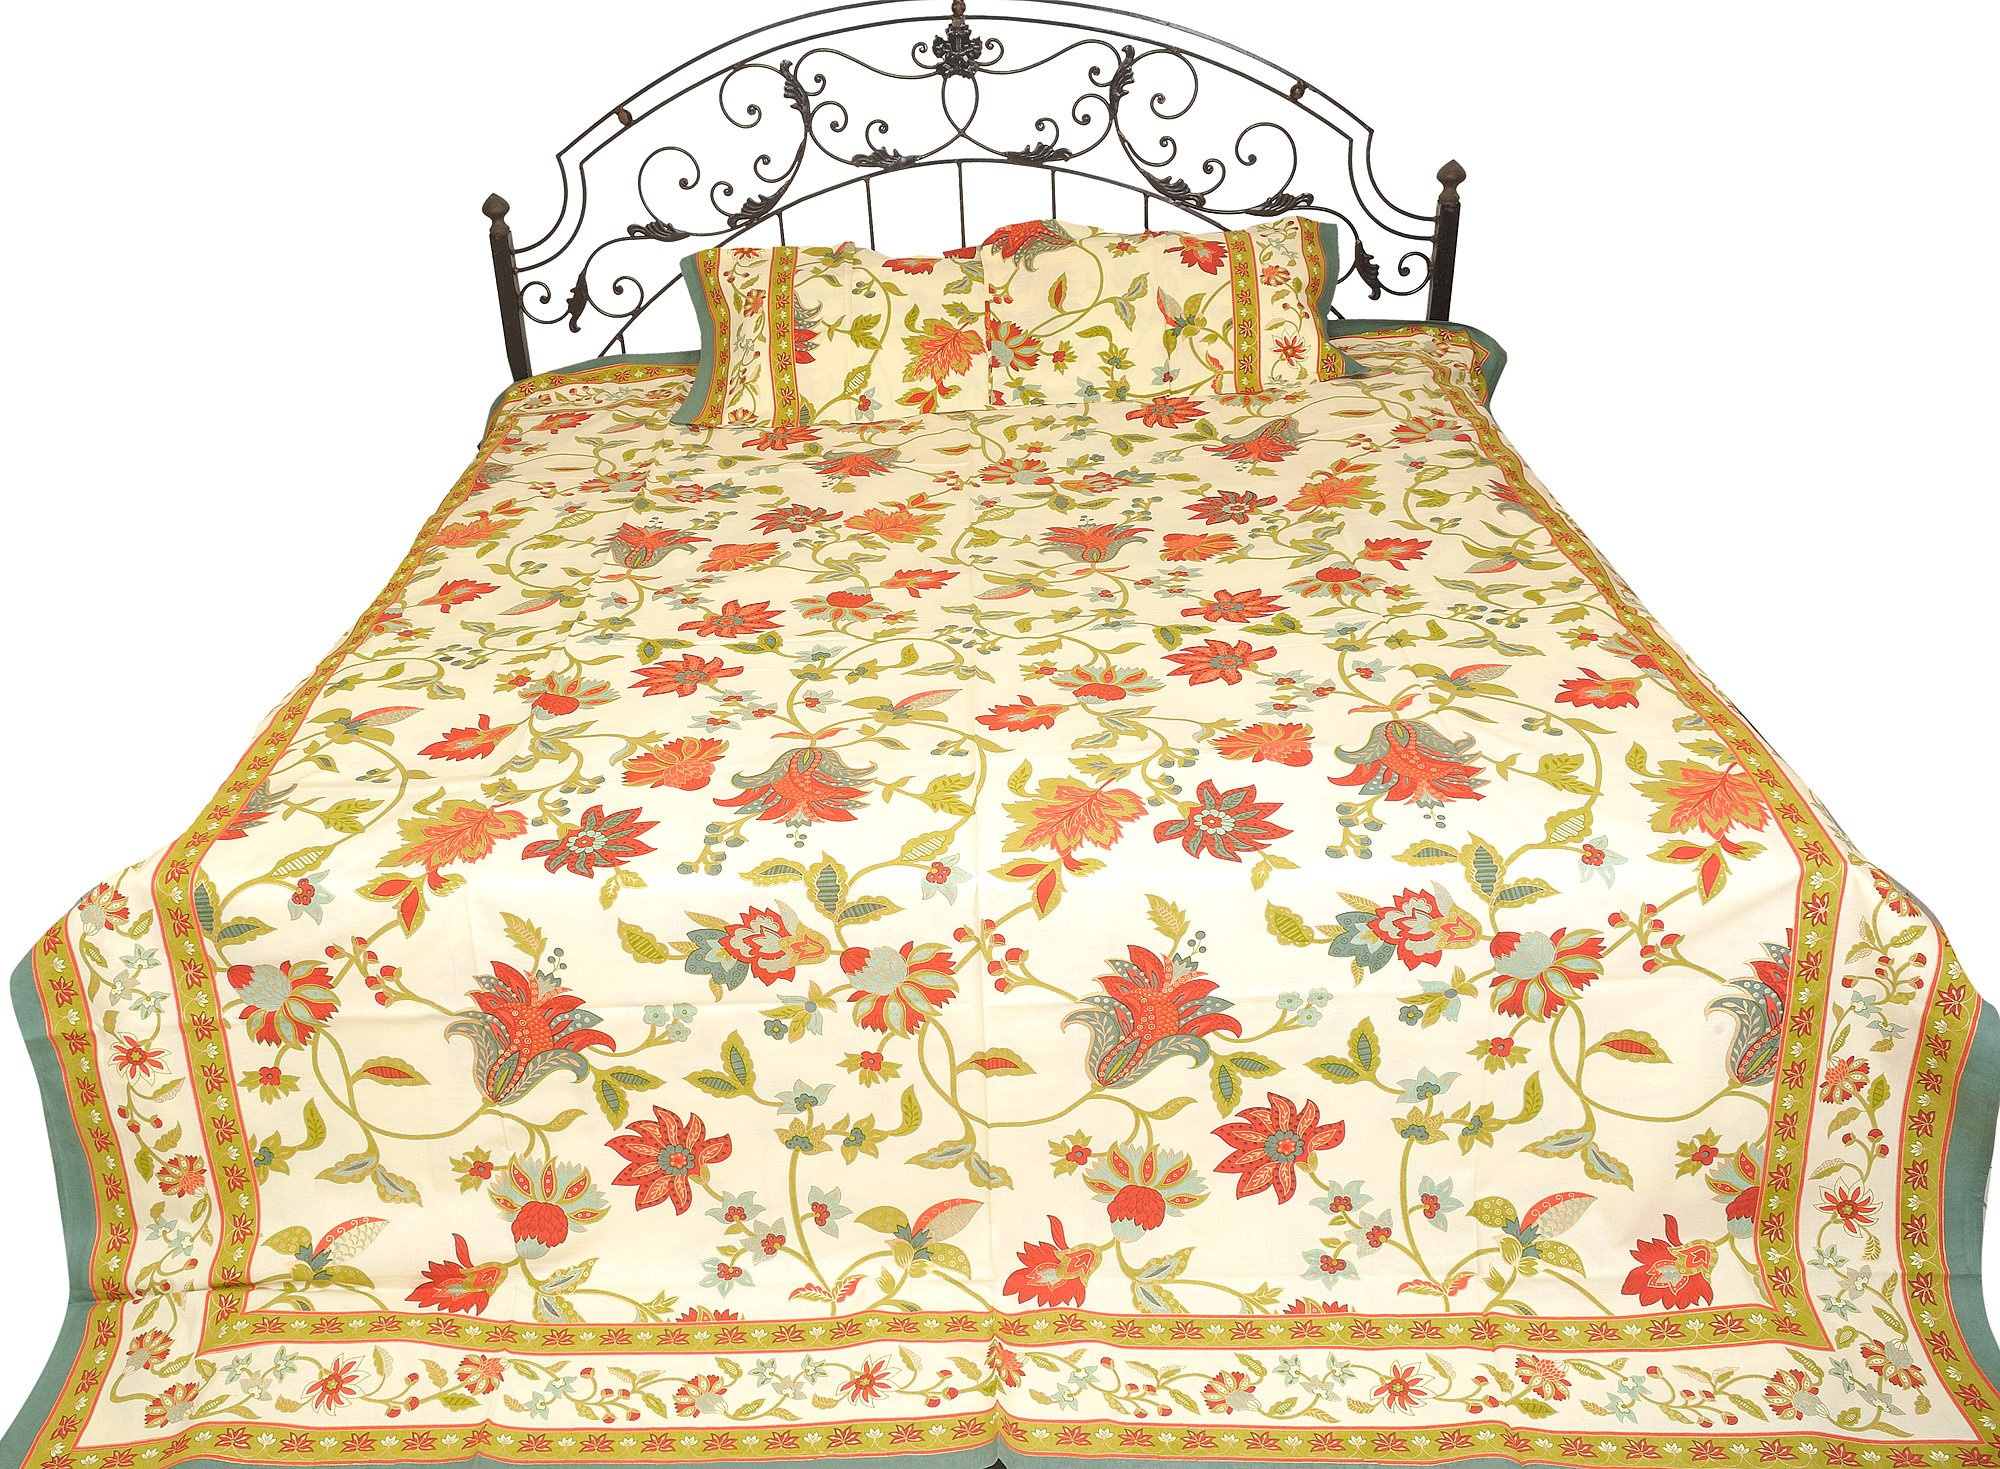 Exotic India Bedspread from Sanganer Printed Flowers Leaves - Pure Cotton Pillow Covers - Color Cream Red Color by Exotic India (Image #1)